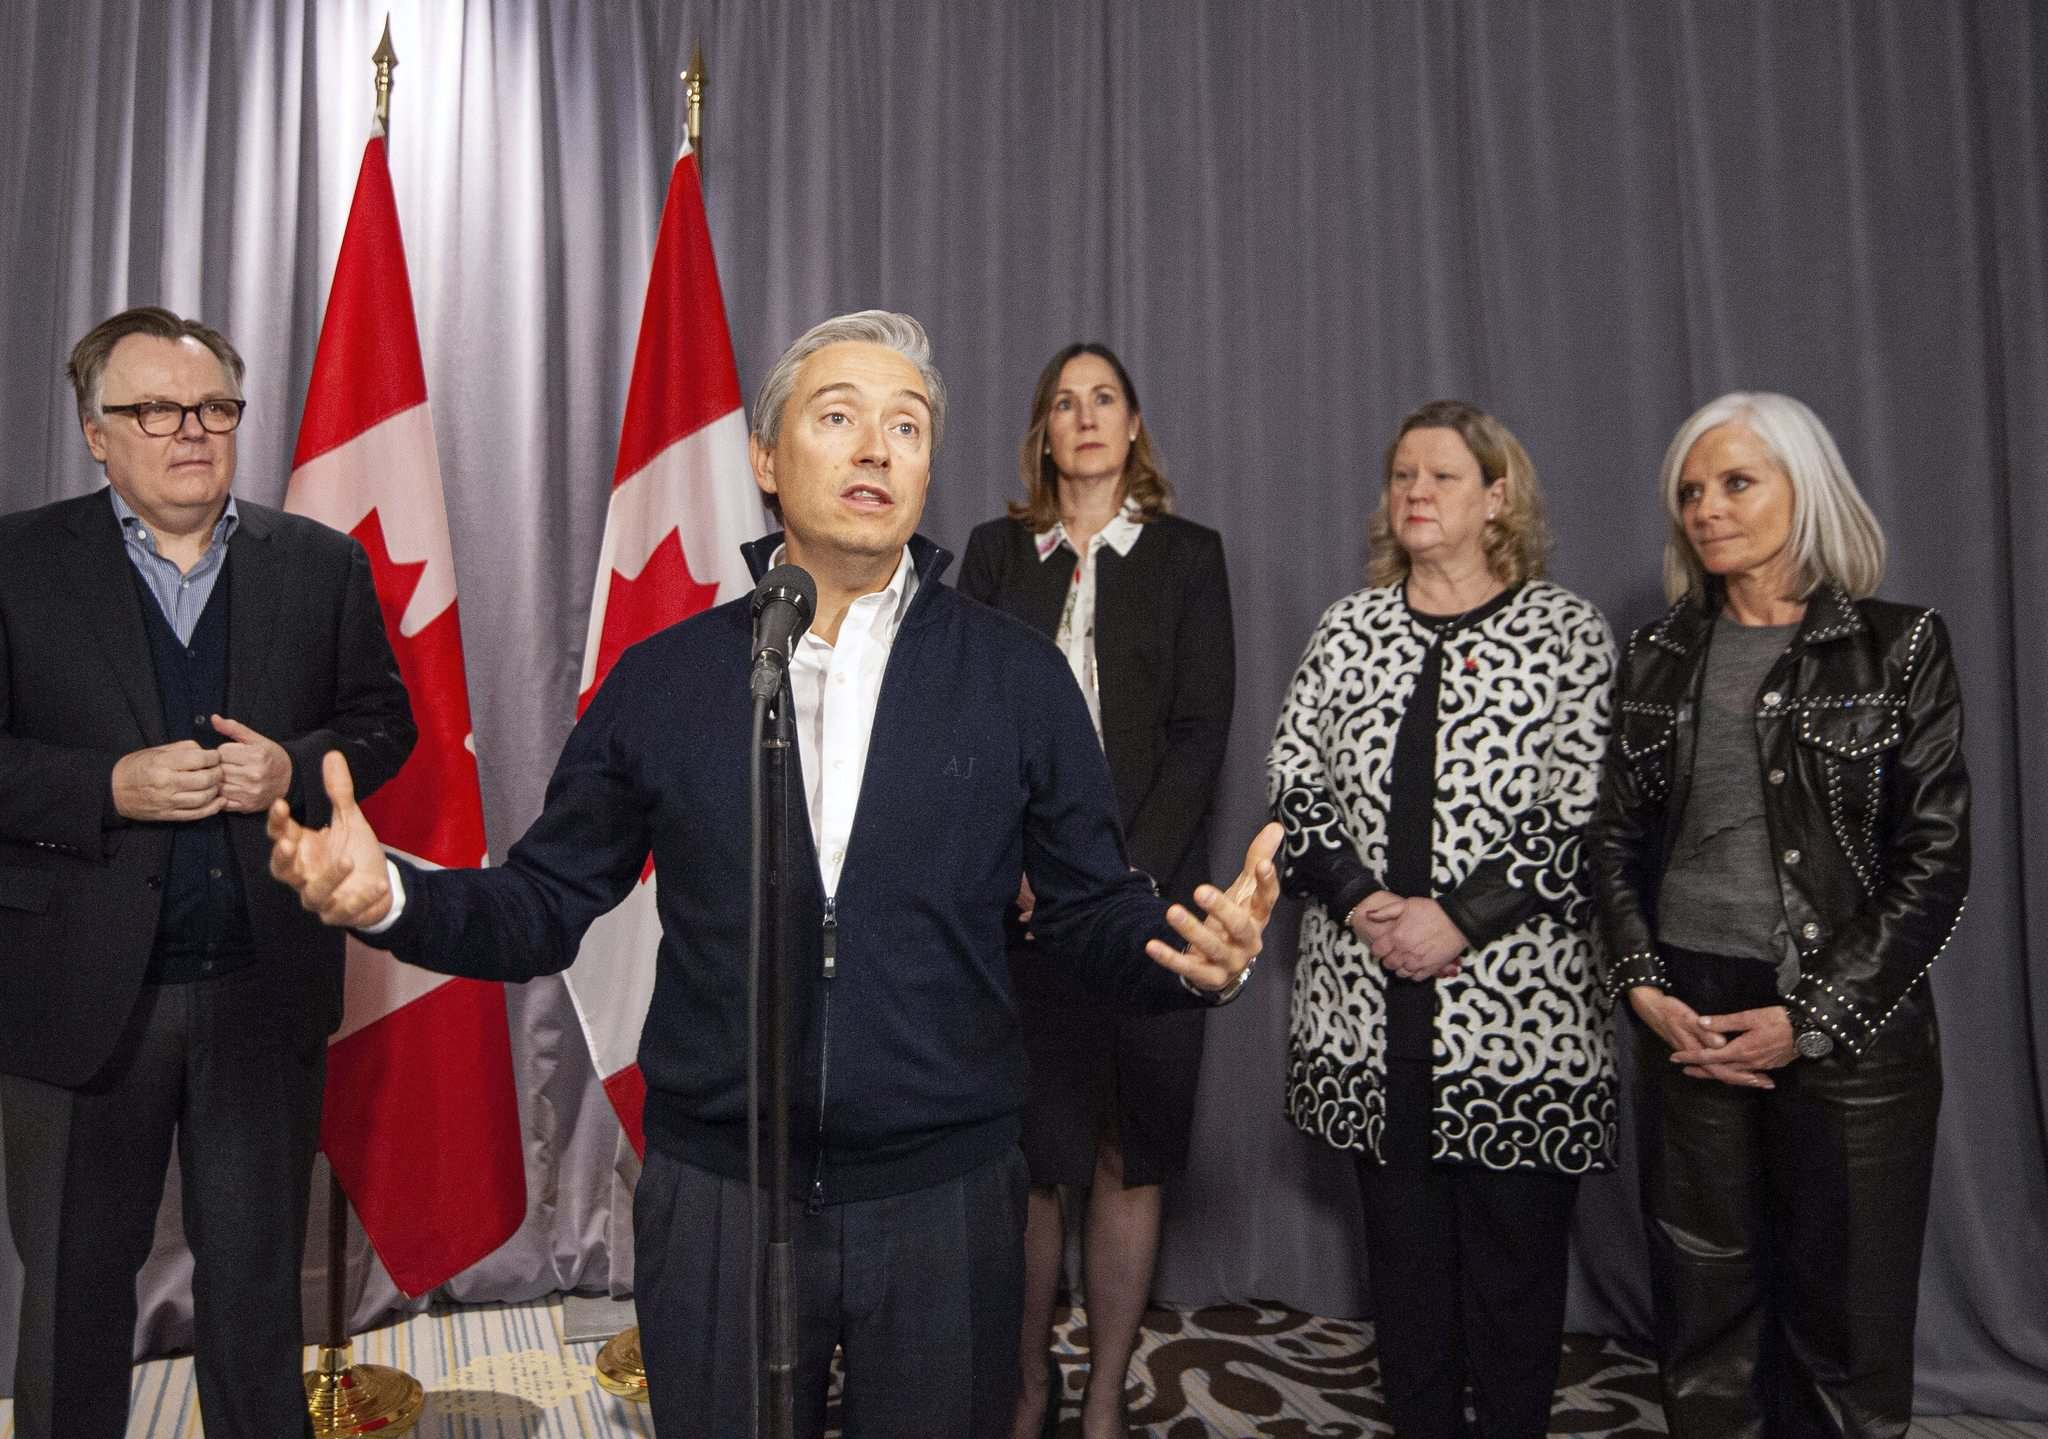 Mike Sudoma / The Canadian Press</p><p>Minister of Foreign Affairs Francois-Philippe Champagne speaks to media alongside (from left) Permanent Representative of Canada to the United Nations Marc-Andre Blanchard, acting Canadian Ambassador to the U.S. Kirsten Hillman, Canadian High Commissioner to the U.K. Janice Charette, and Canadian Ambassador to France Isabelle Hudon during the Liberal cabinet retreat in Winnipeg on Sunday.</p></p>